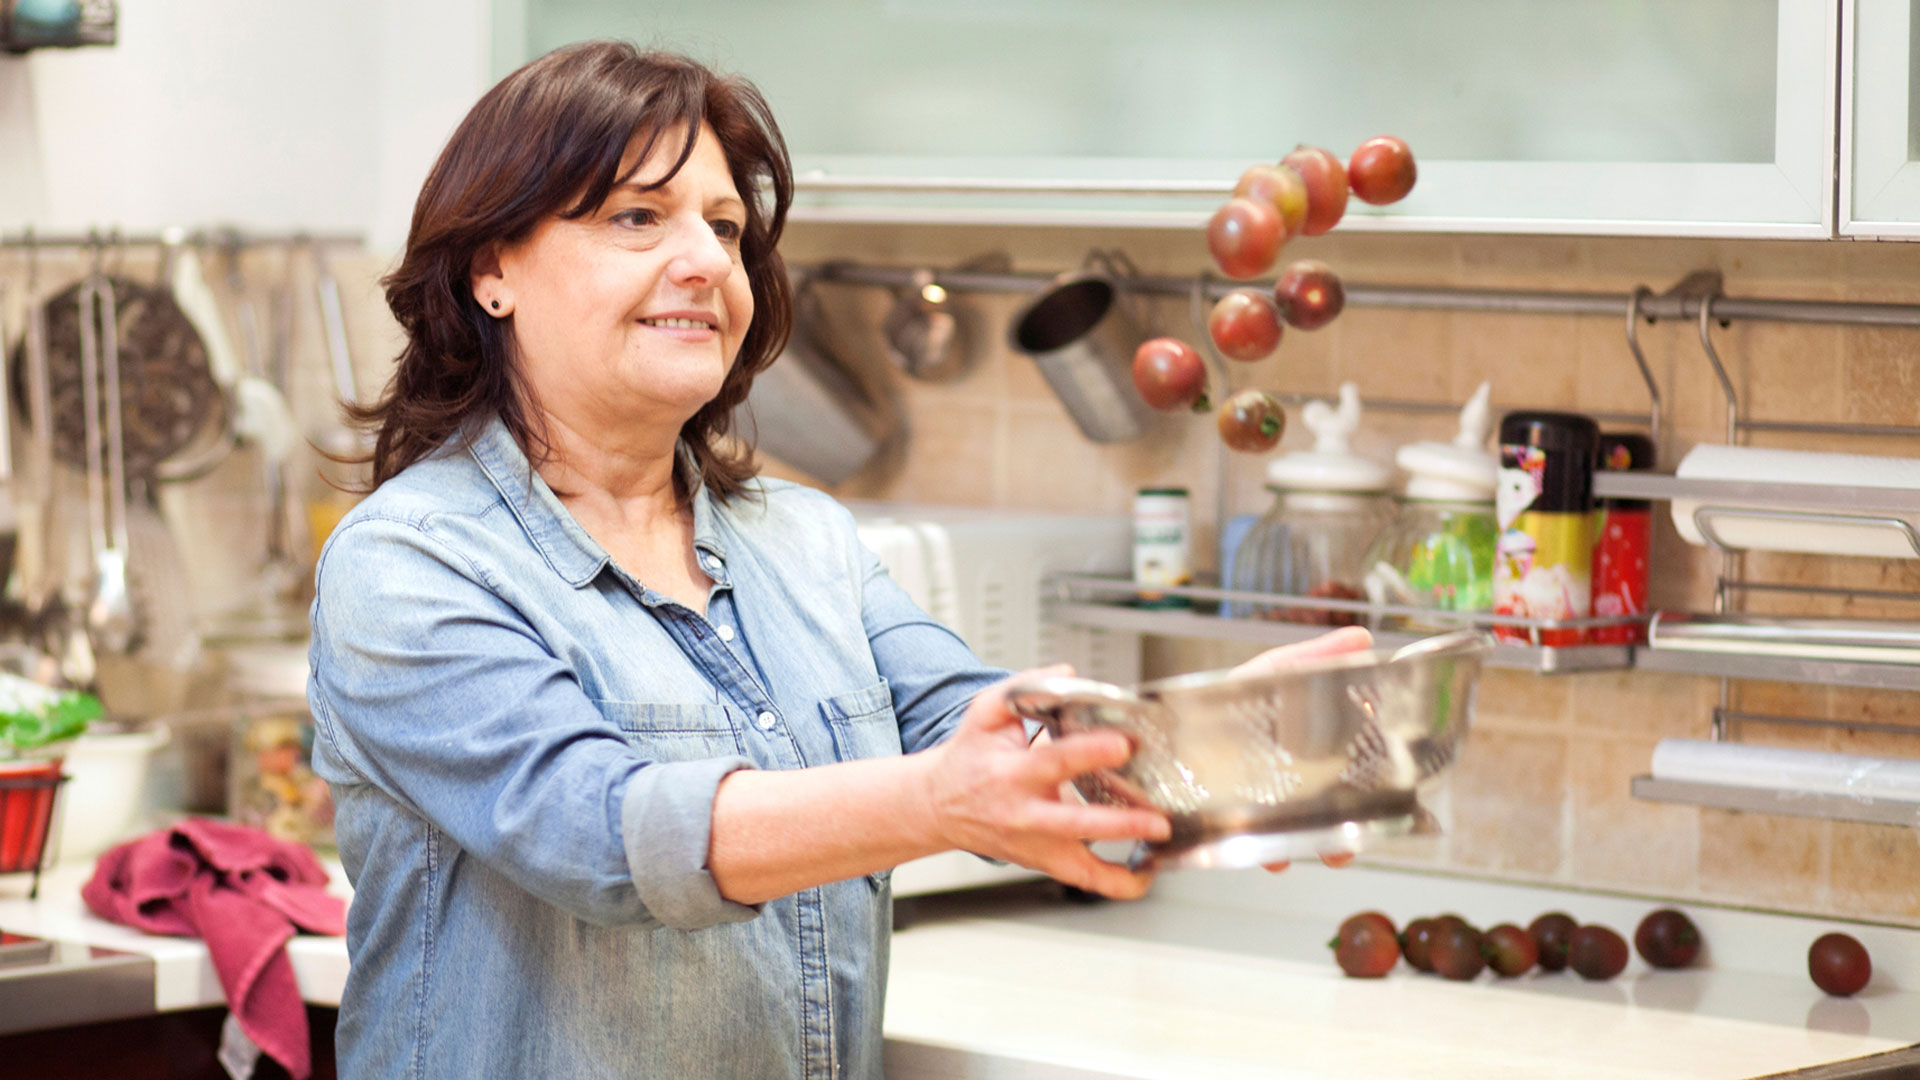 Sara-Prezman-rinsing-tomatoes-for-her-delicious-and-healthy-recipe-Foodadit